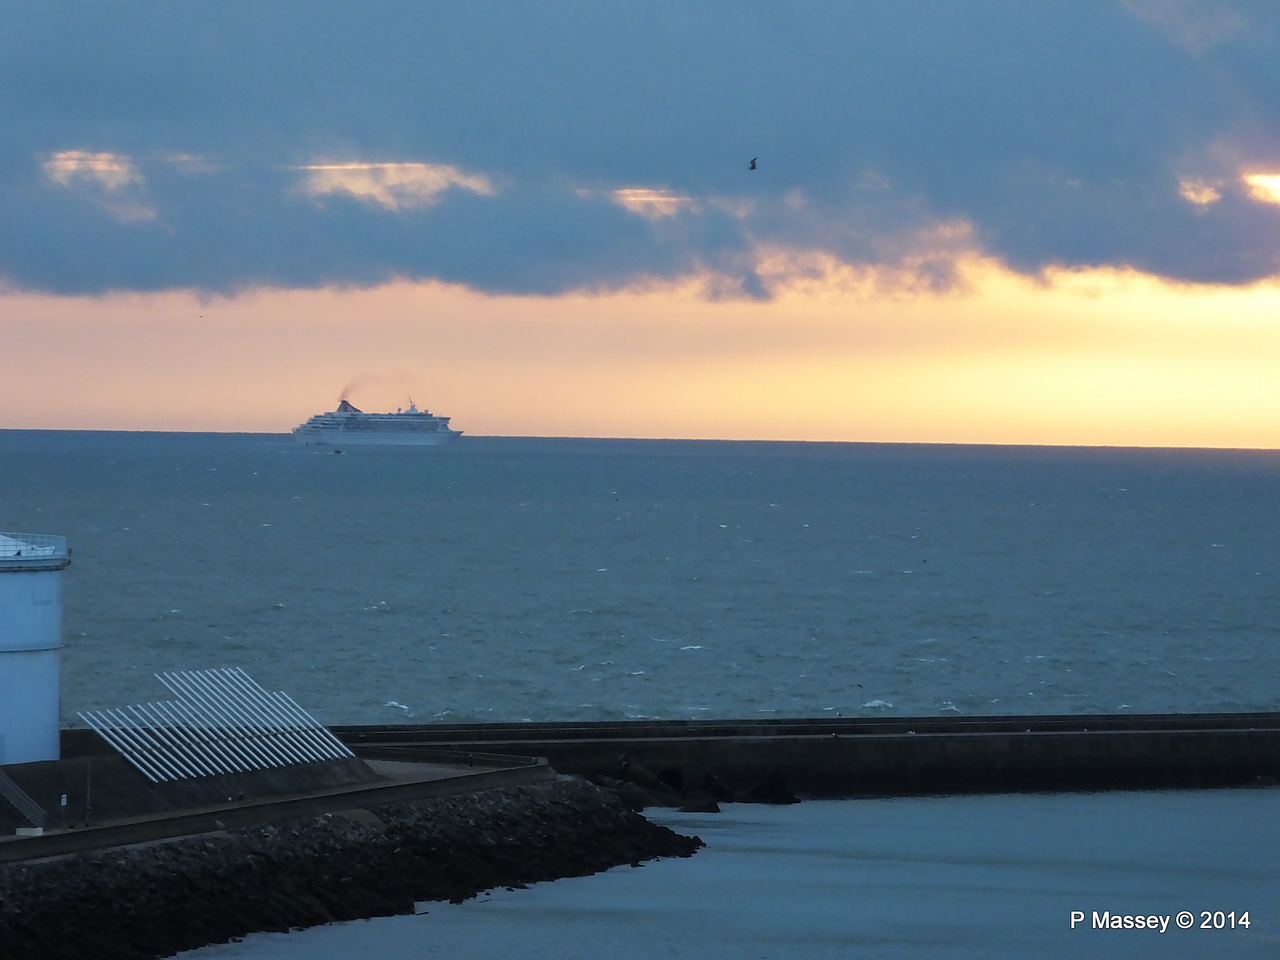 BALMORAL Passing Le Havre from Rouen to La Pallice PDM 06-10-2014 18-16-35